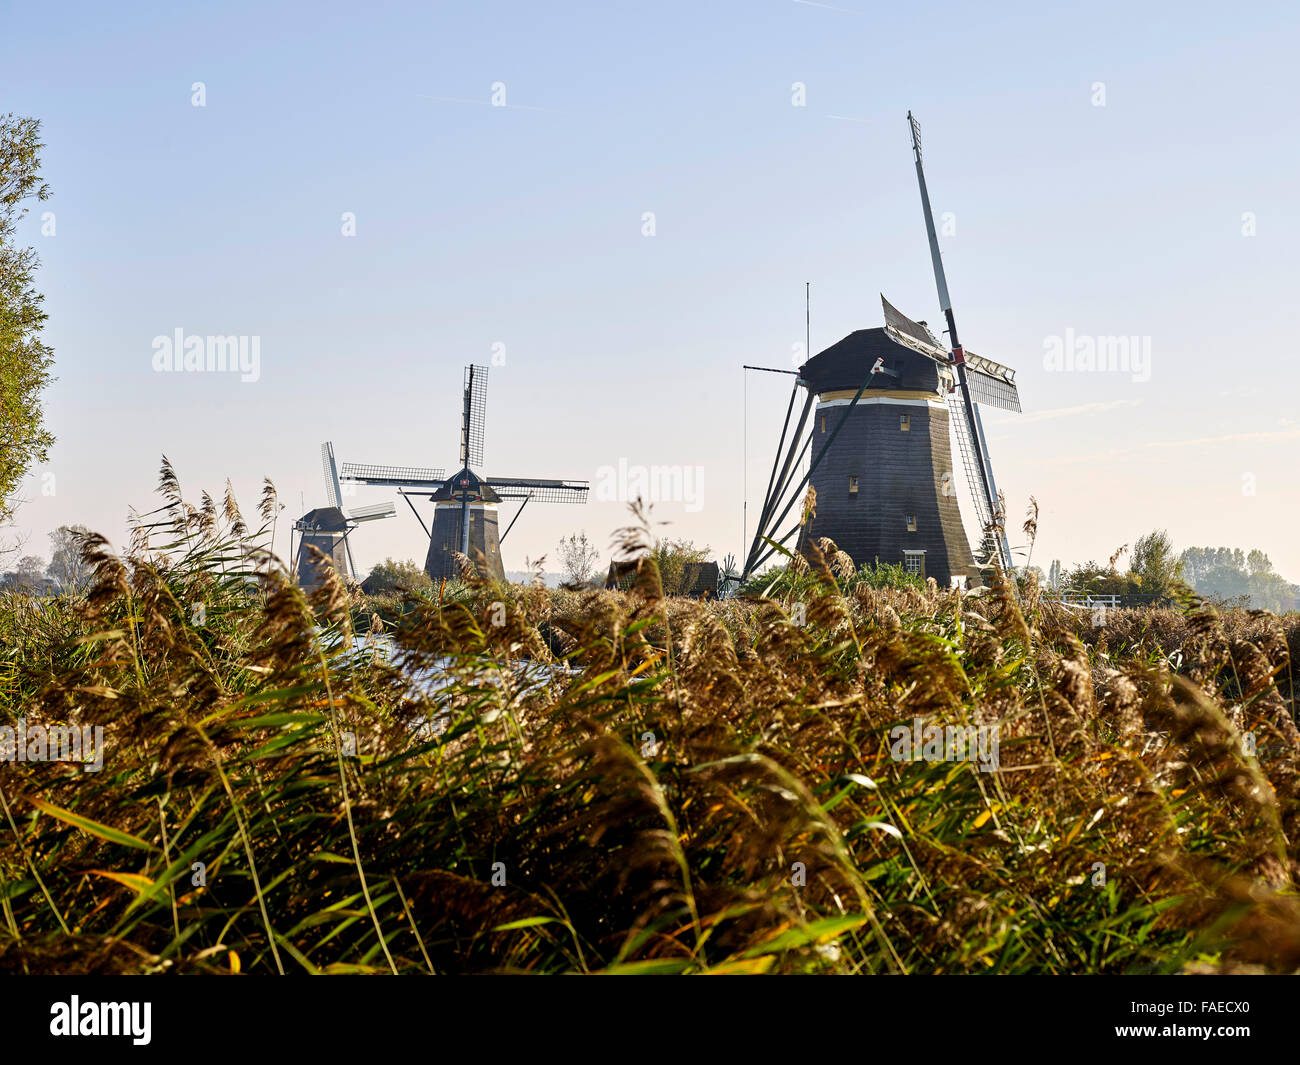 Dutch windmills in the polder near The Hague, Netherlands - Stock Image